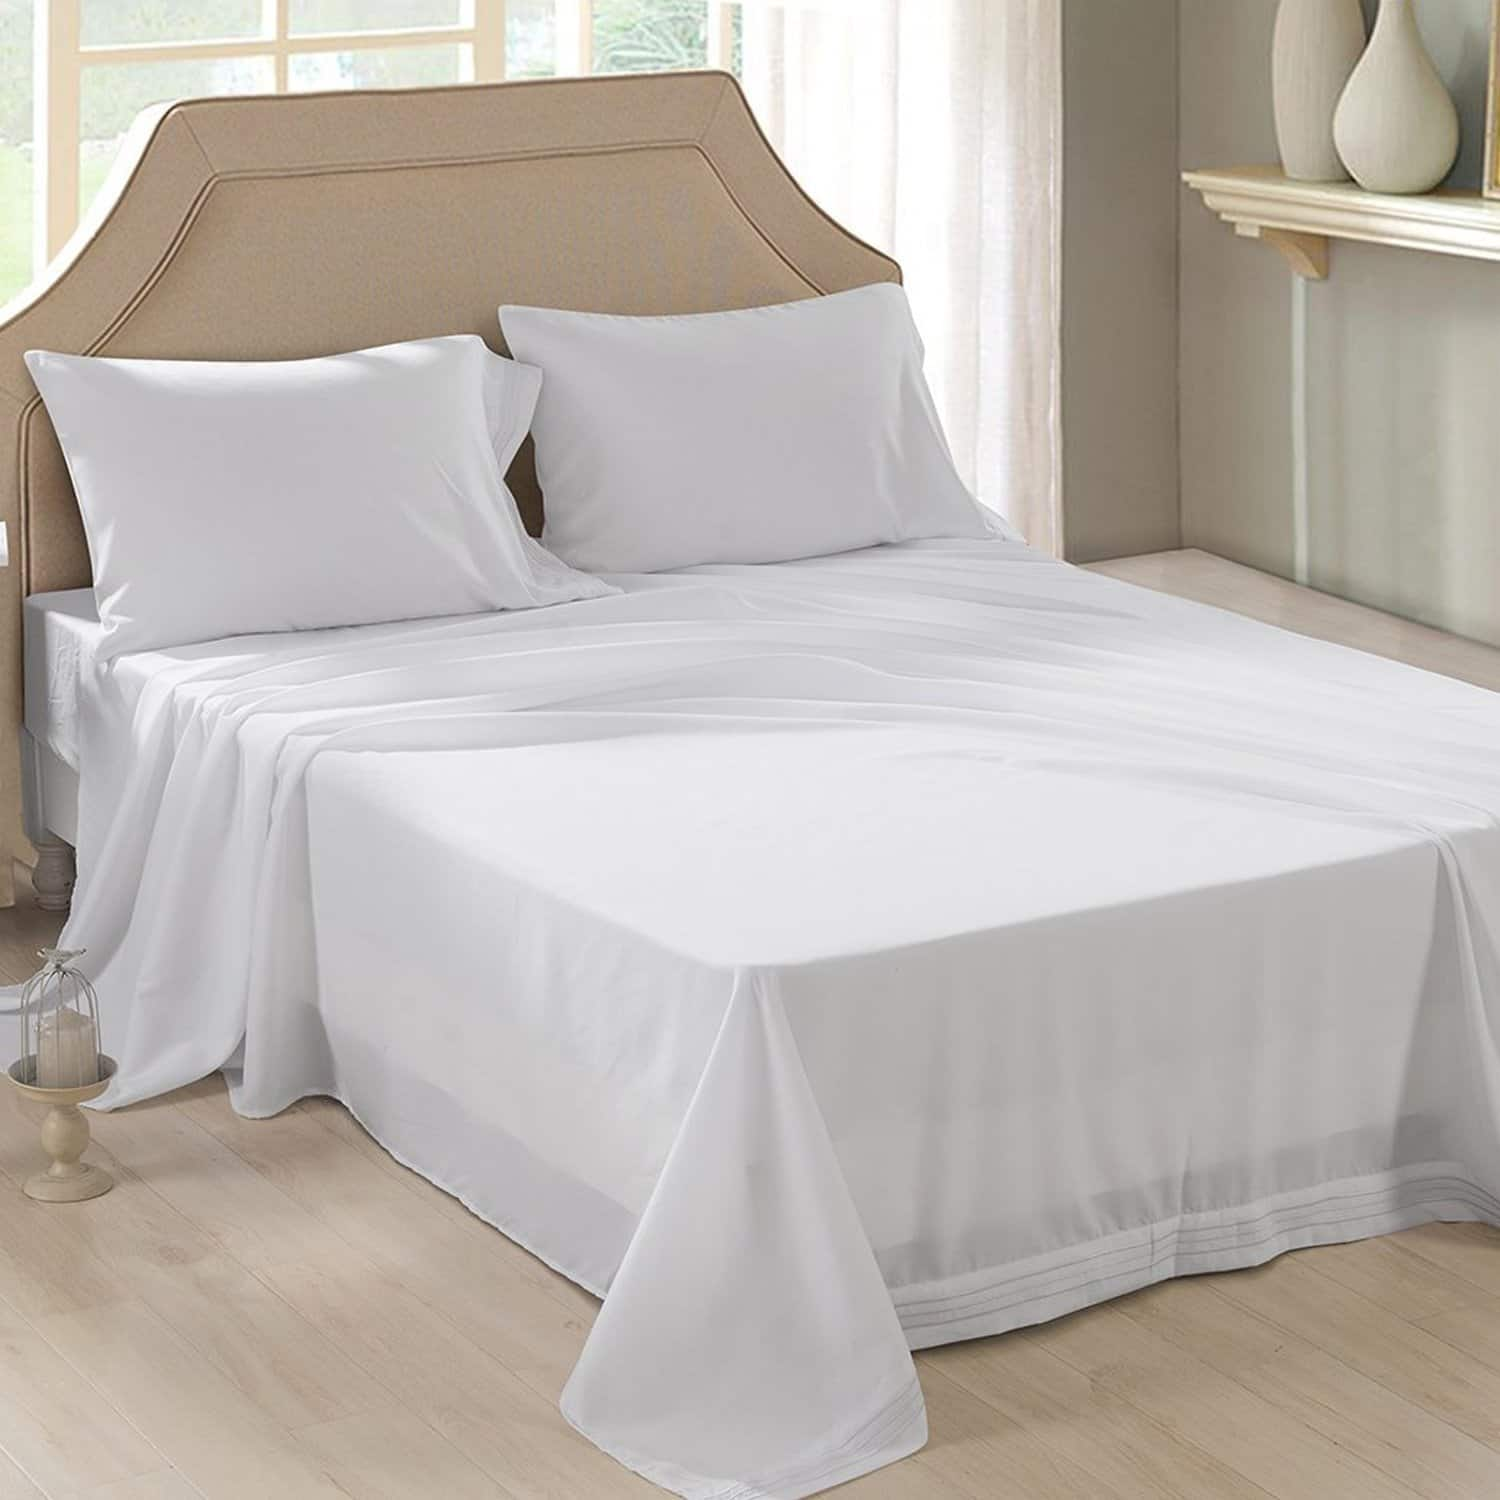 4-piece Ultra Soft Bedding Microfiber Queen Bed Sheet Set from $6.49 AC FS w/ Prime